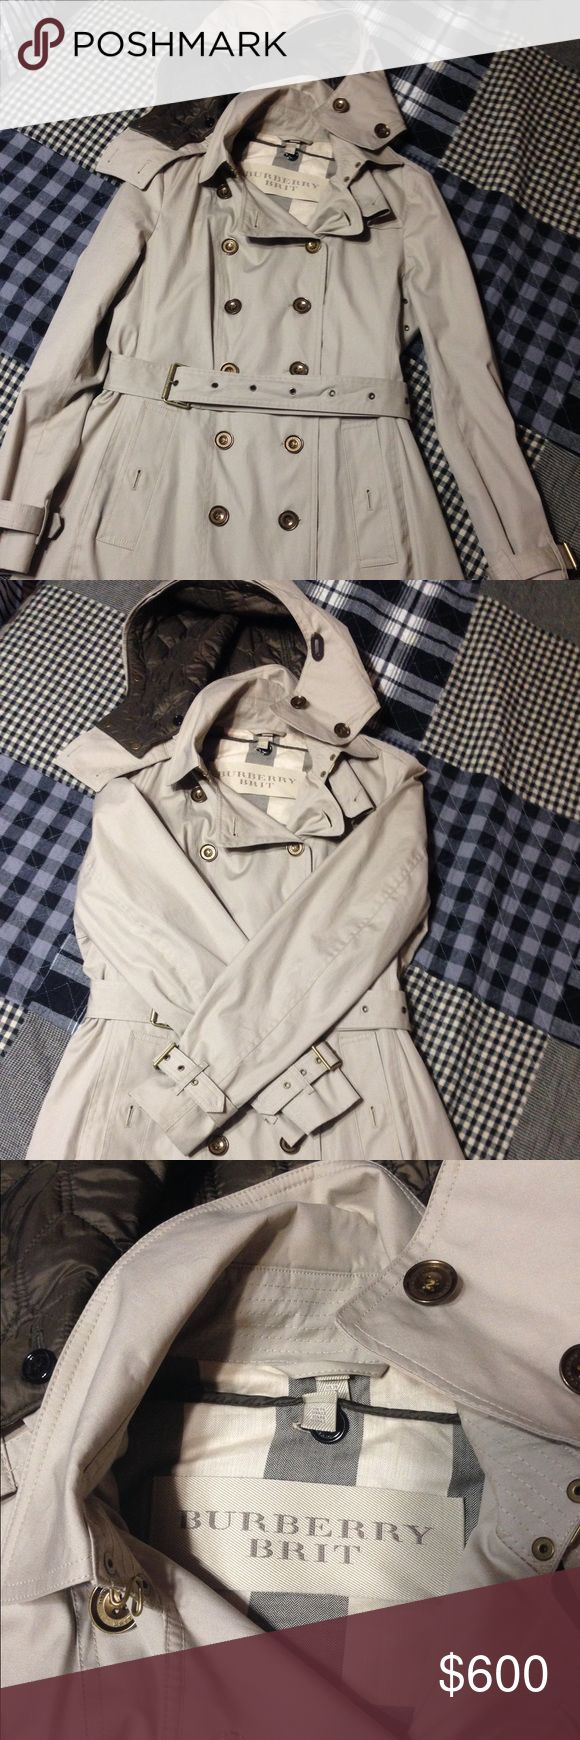 BURBERRY Trench Coat Light Grey Burberry Trench Coat used only once. I have got this coat as a birthday present from my friend years ago but the coat is way bigger than my size (mine is 8 or 10, this one is 12). I guarantee this coat is as new as 99% (the only reason took 1% is because of time). Contact me if you have any further questions about the item. Thank you! Burberry Jackets & Coats Trench Coats